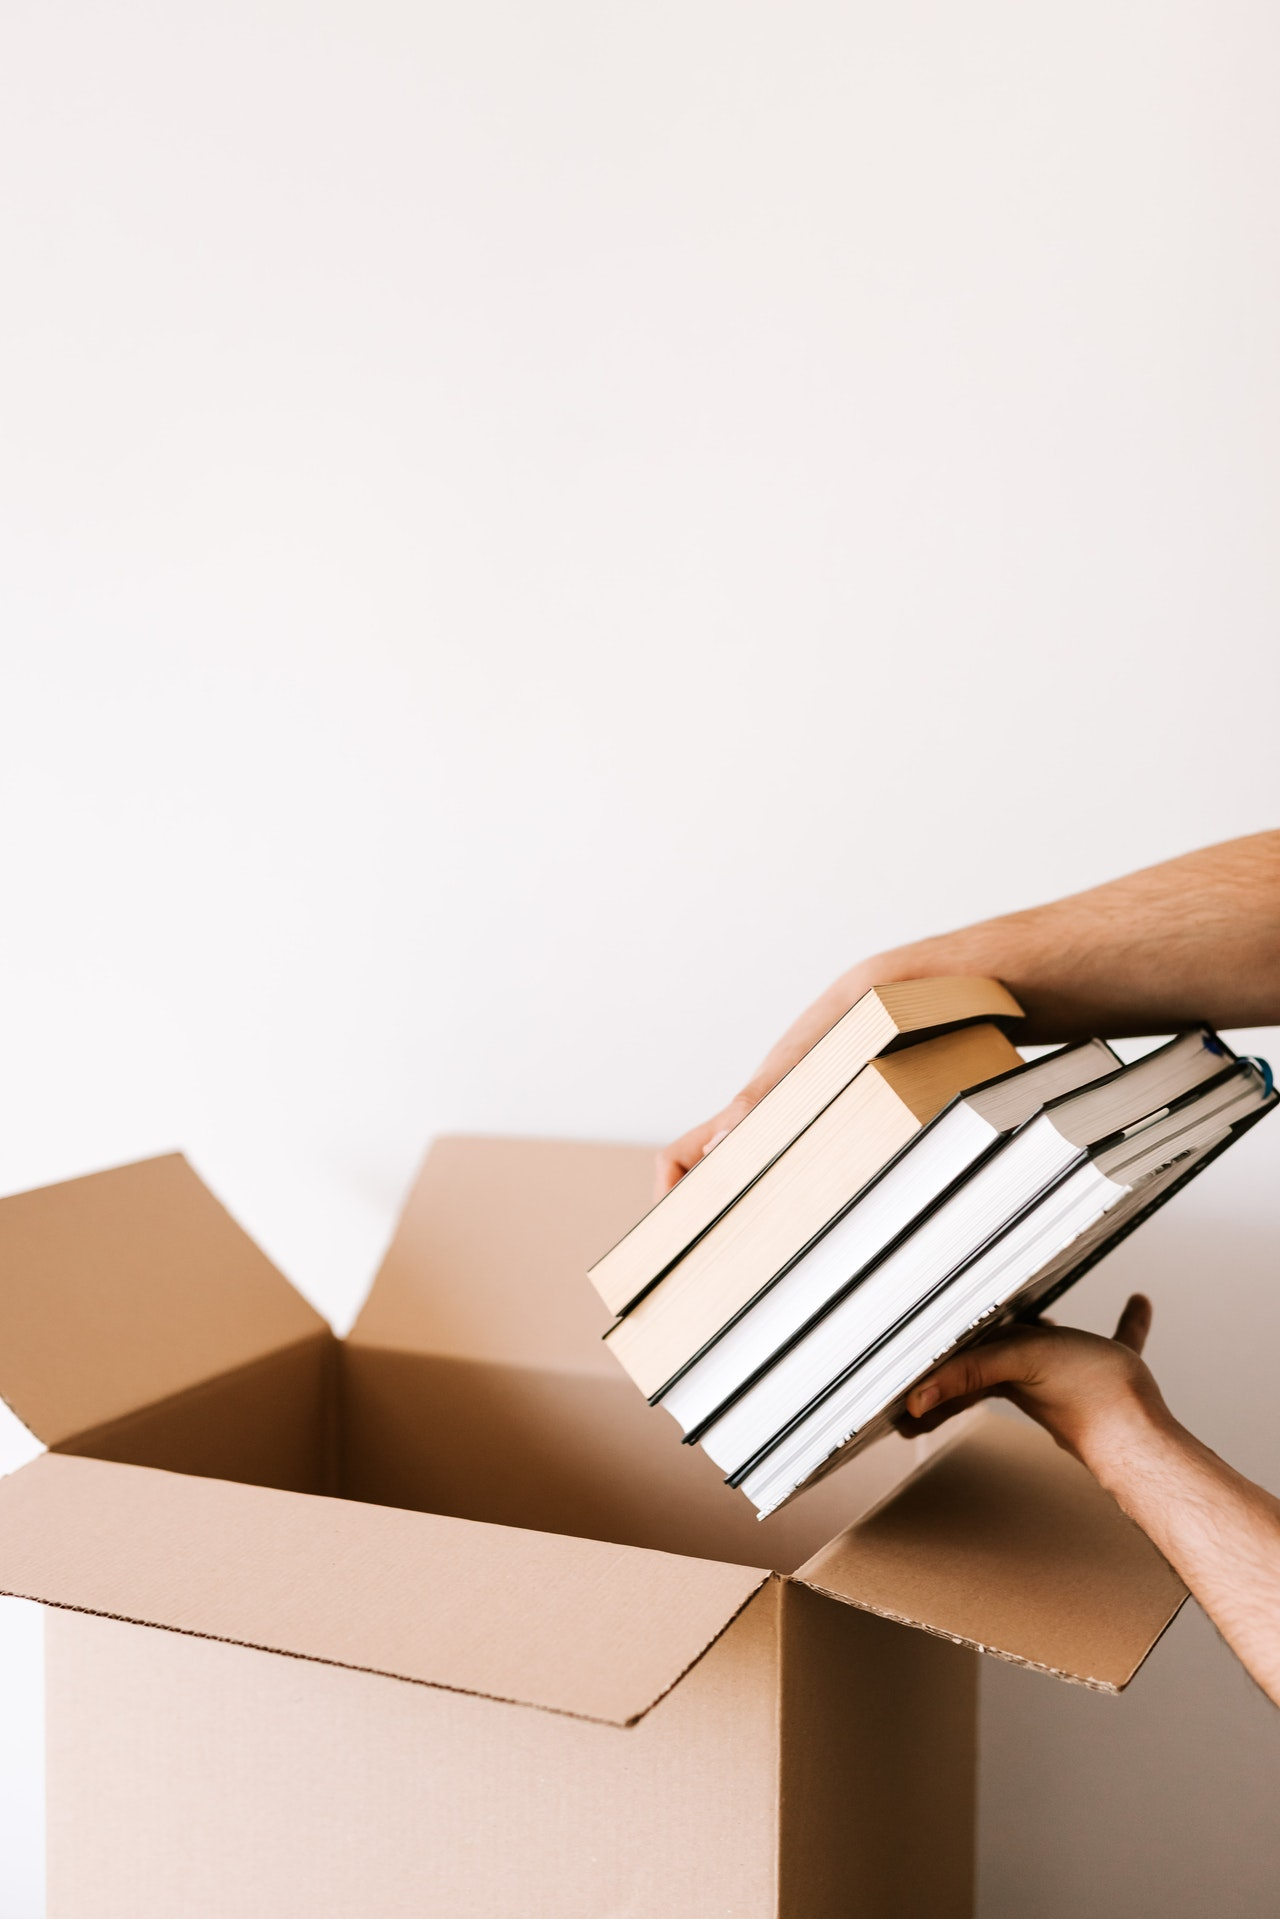 placing books in a moving box